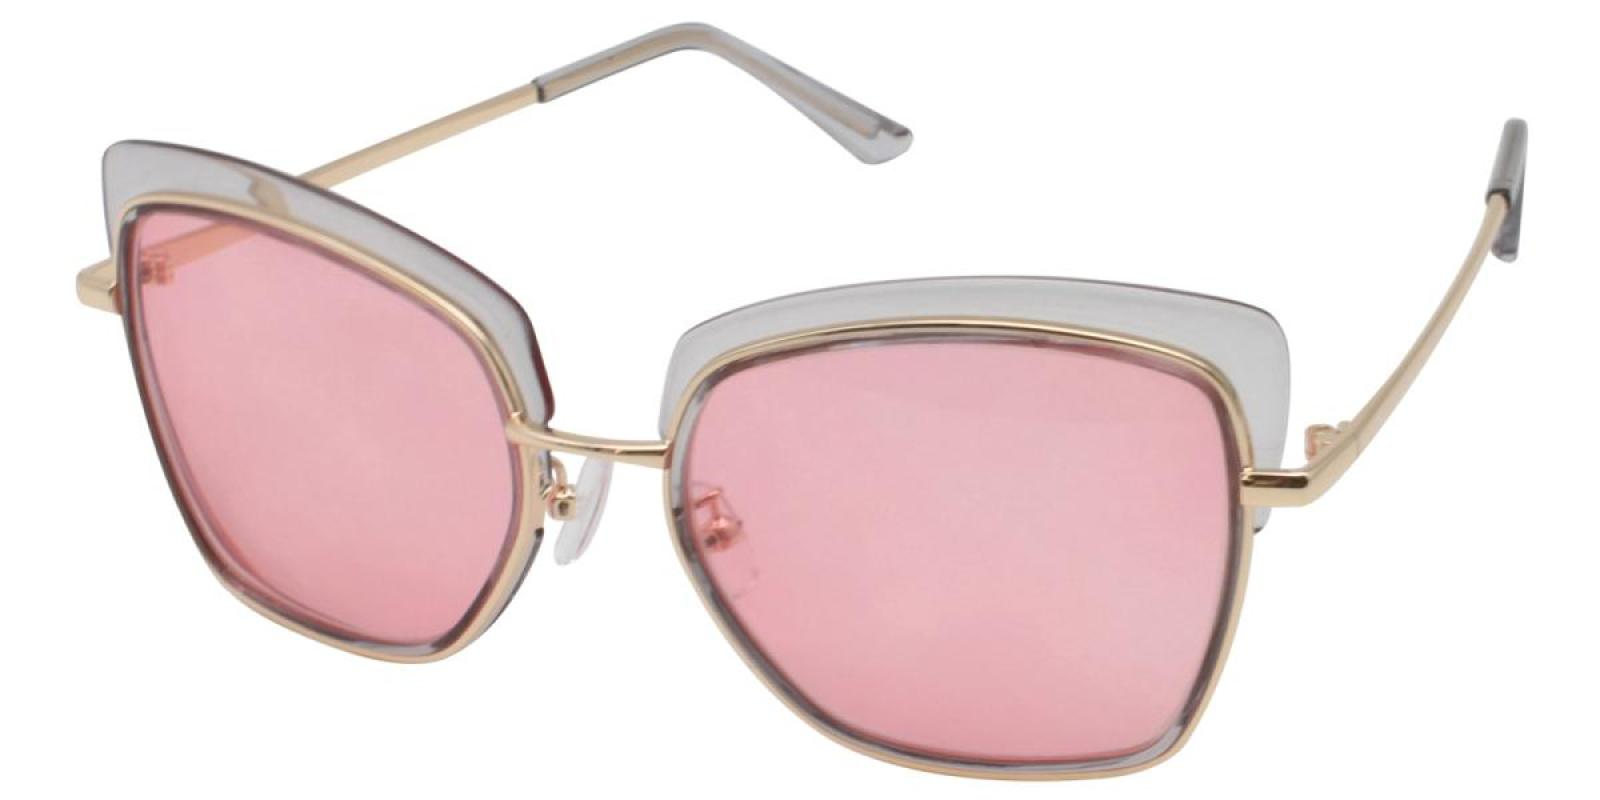 Riotousy-Translucent-Cat-Metal / Combination / TR-Sunglasses-additional1